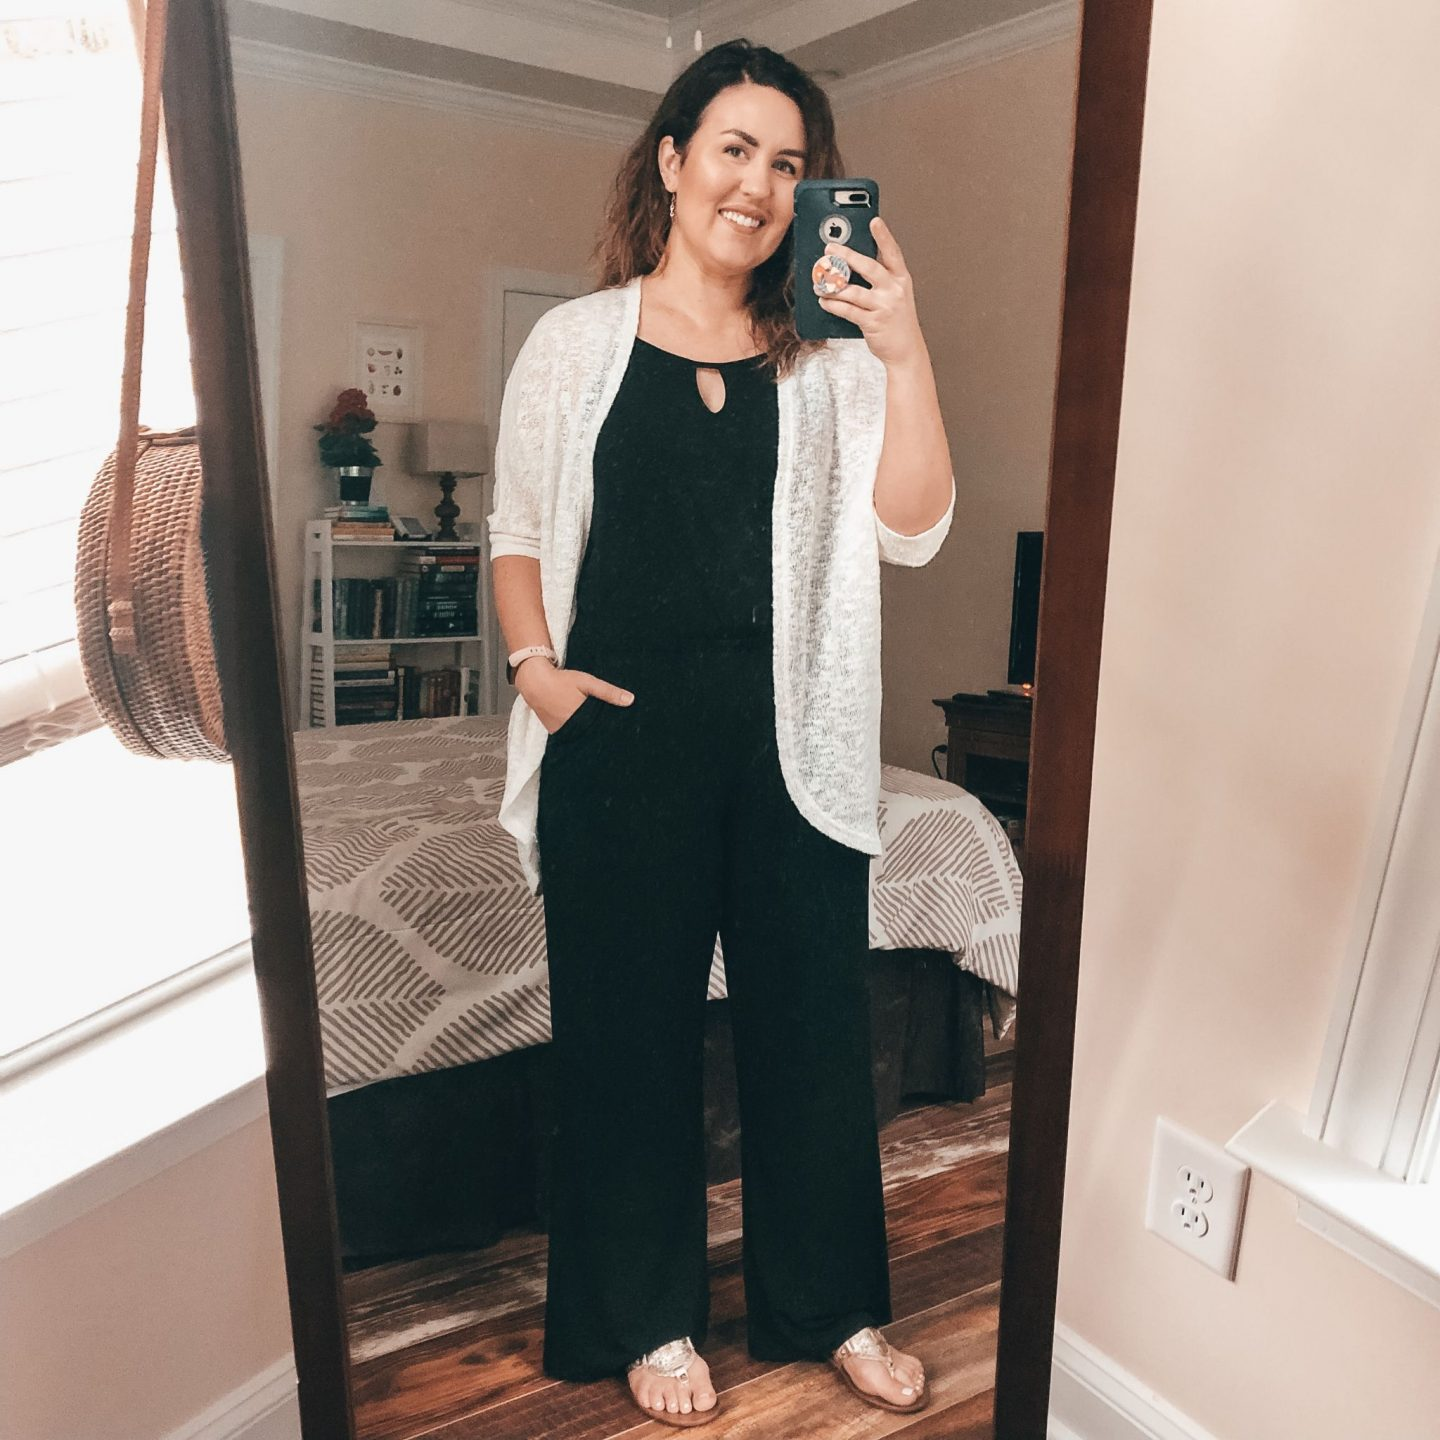 NC blogger Rebecca Lately shares how she is styling black jumpsuits this summer. If you need inspiration for your summer outfits, check this out!